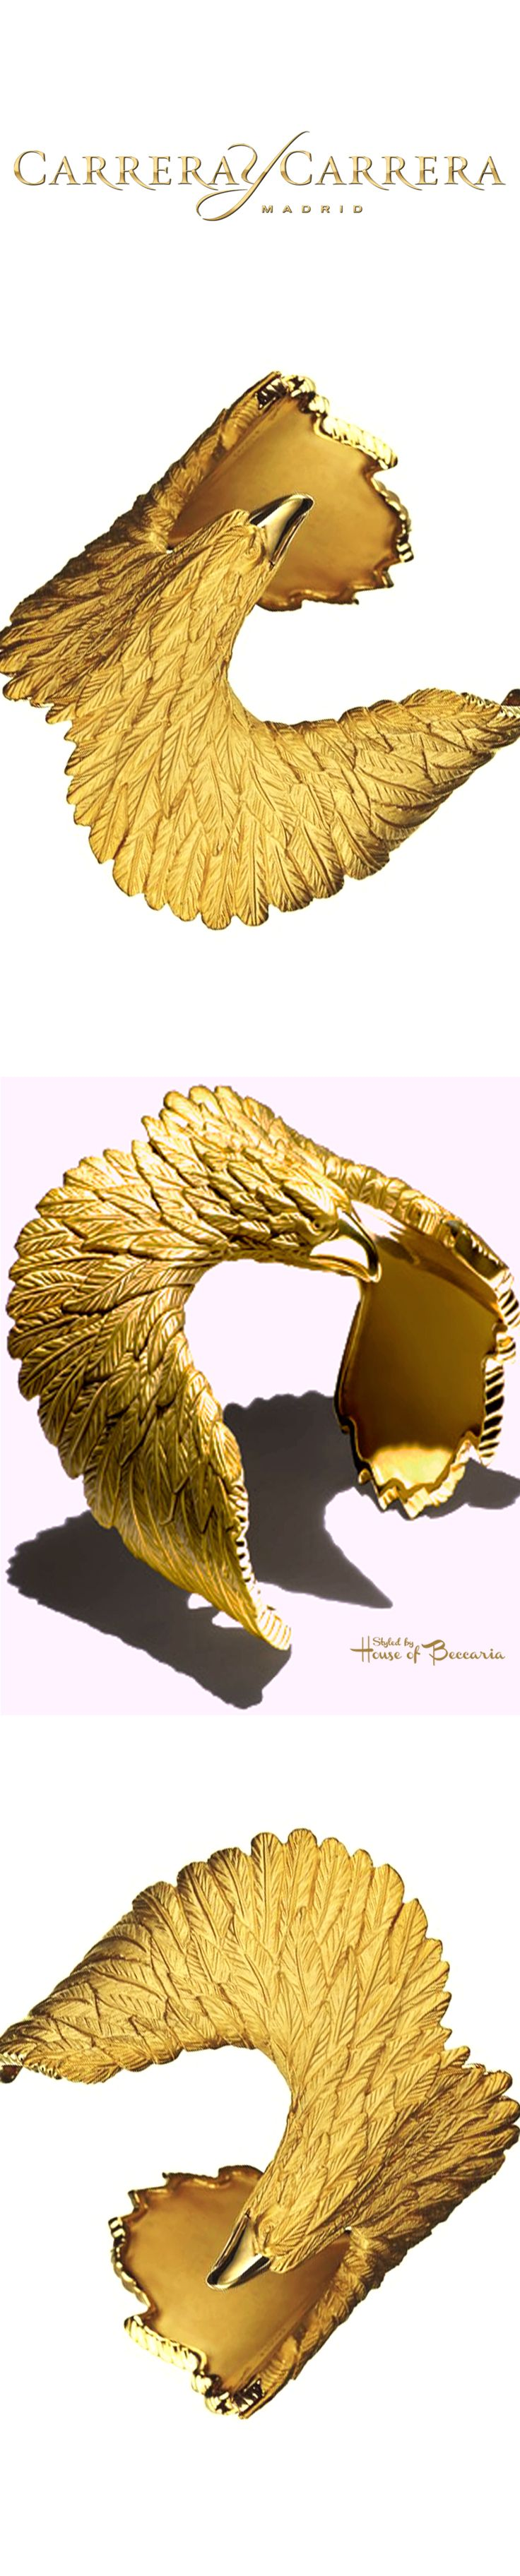 ~Carrera Y Carrera 18k Gold Eagle Bestiario Collection | House of Beccaria